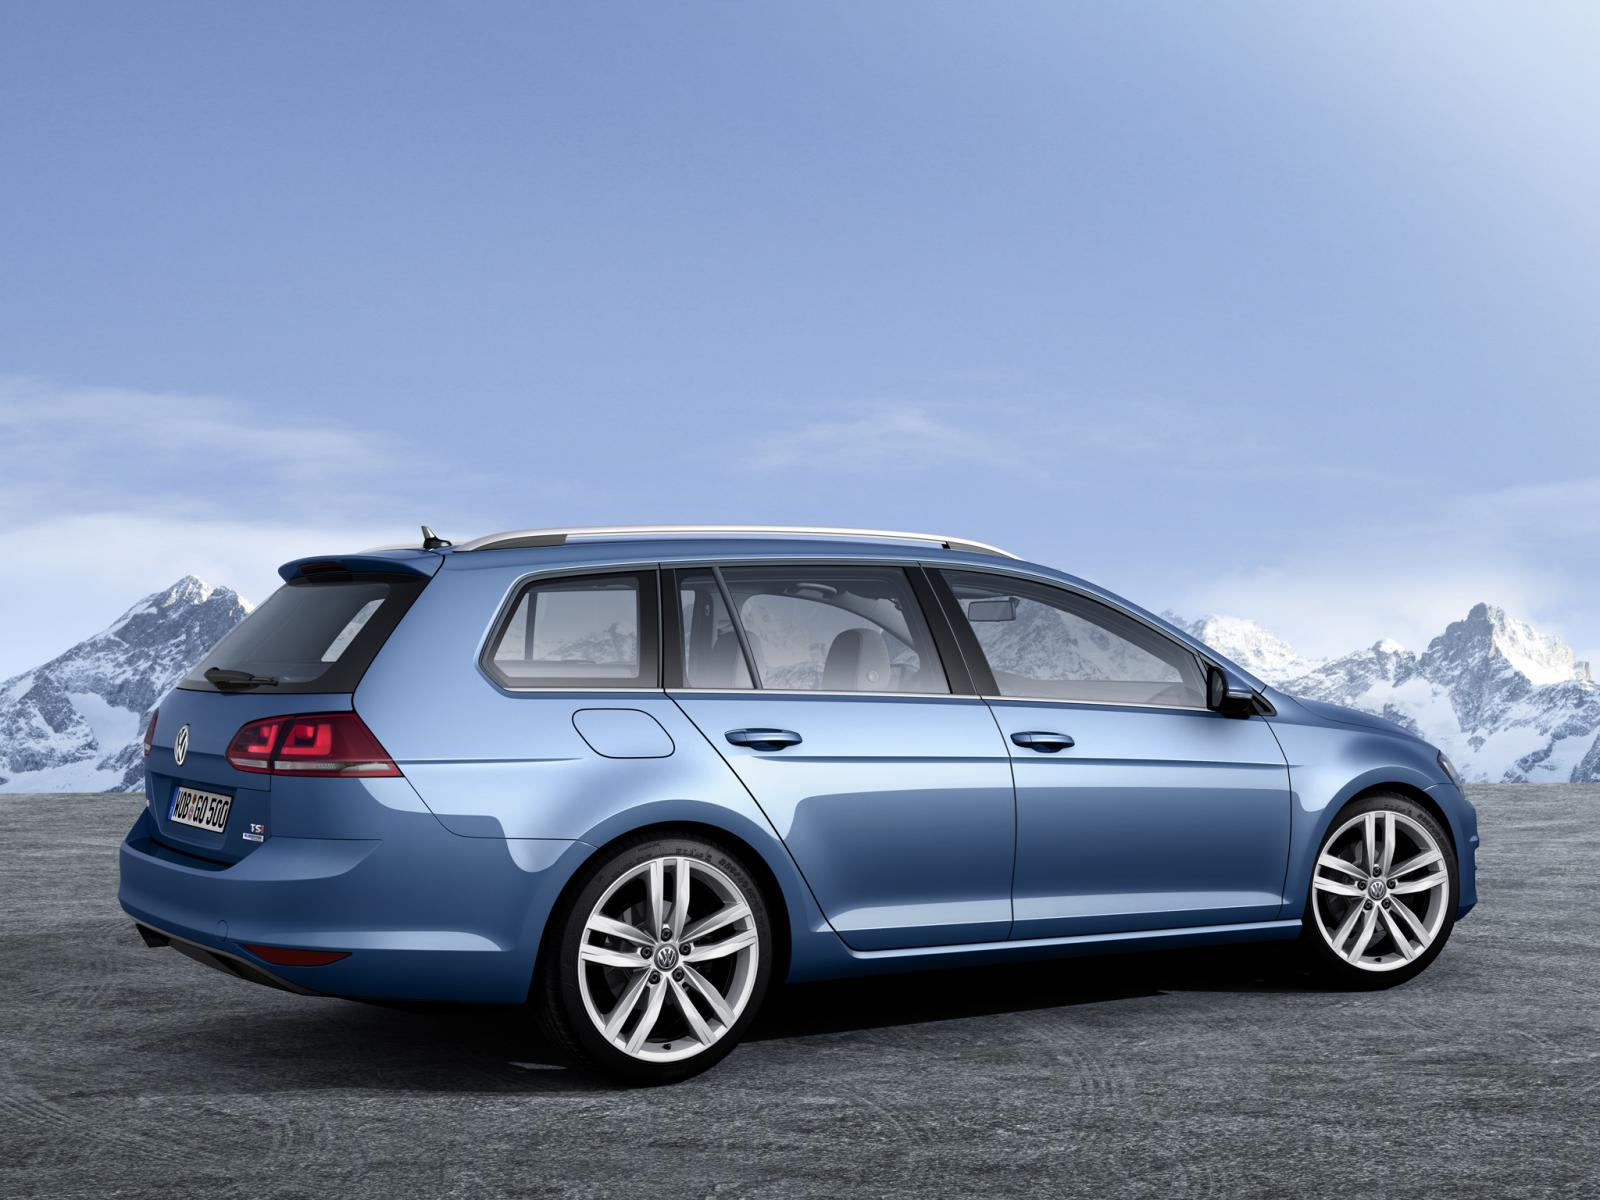 This Is the 2013 Volkswagen Golf Variant and Next Jetta SportWagen - autoevolution